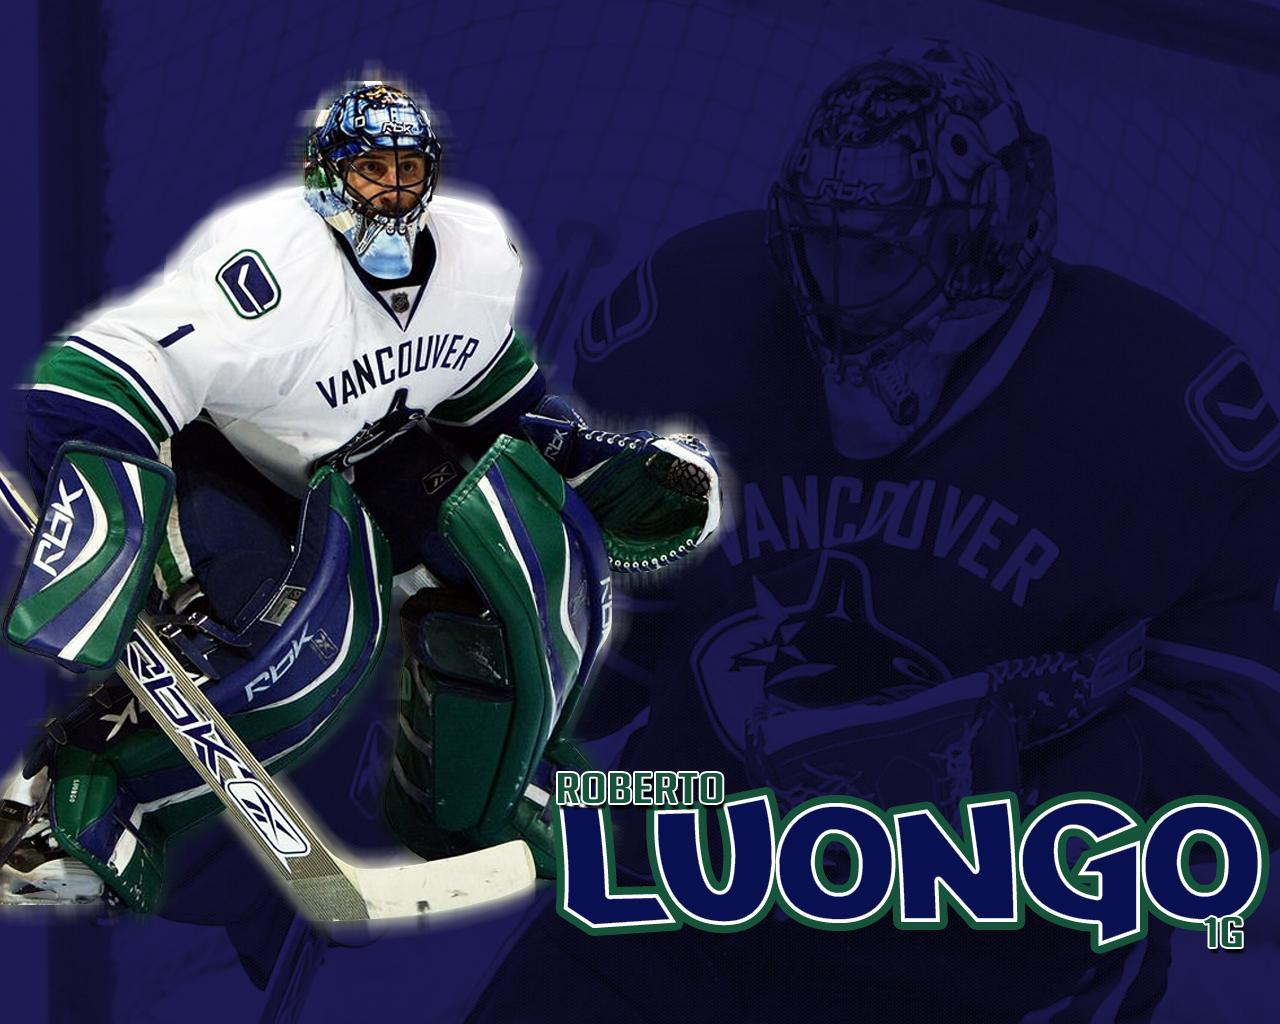 Roberto Luongo screenshots, image and pictures